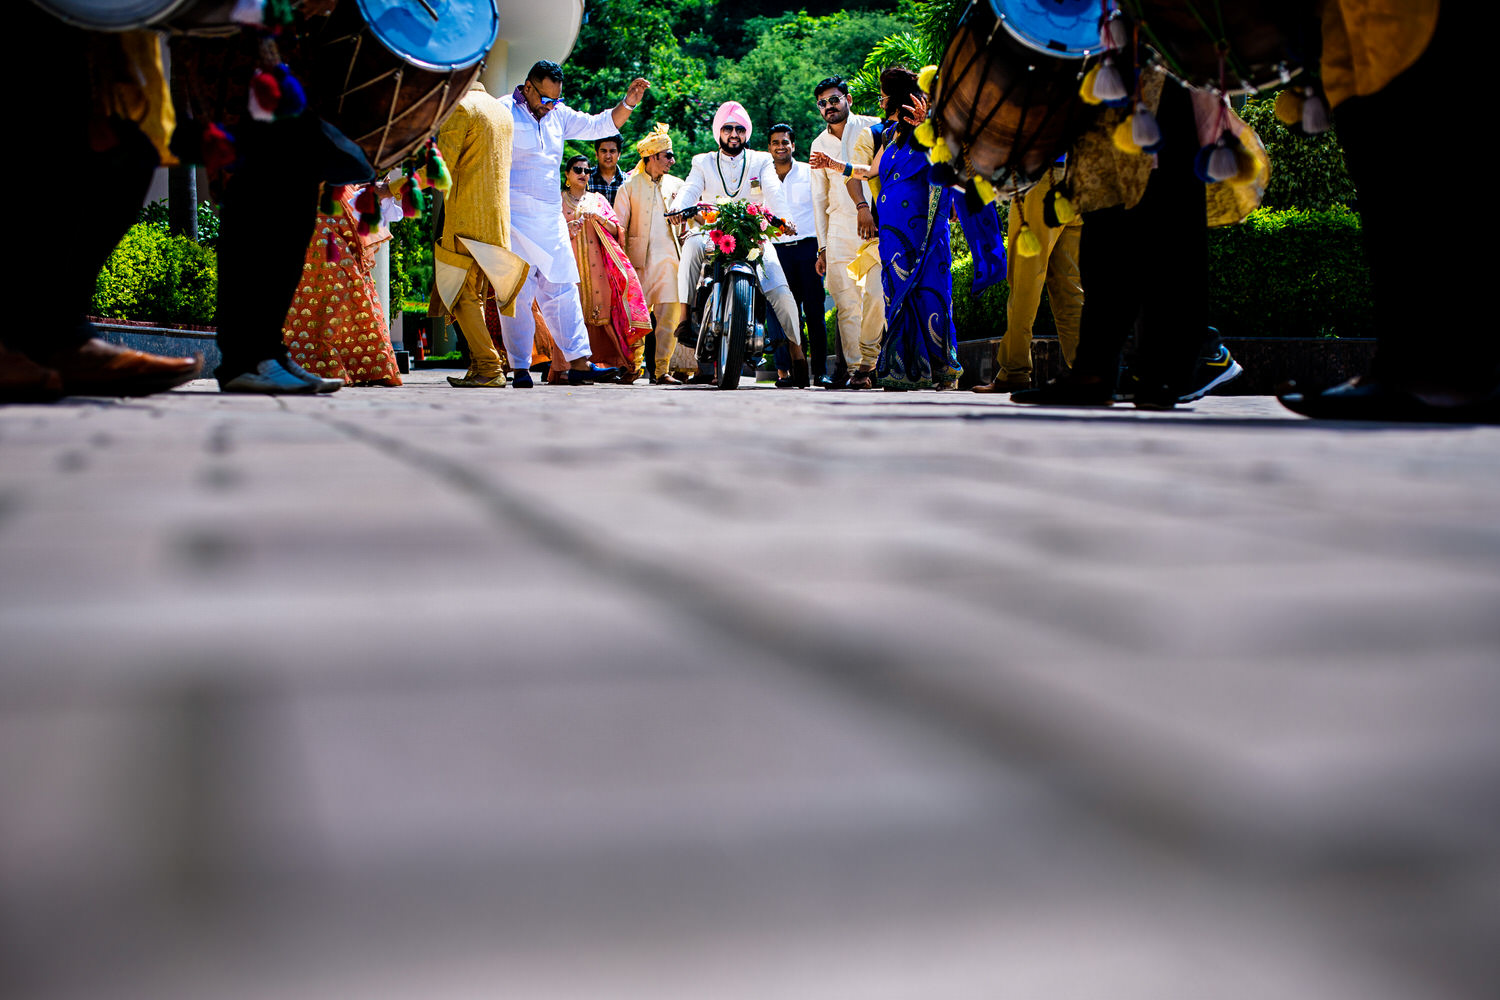 Baraat on a bike